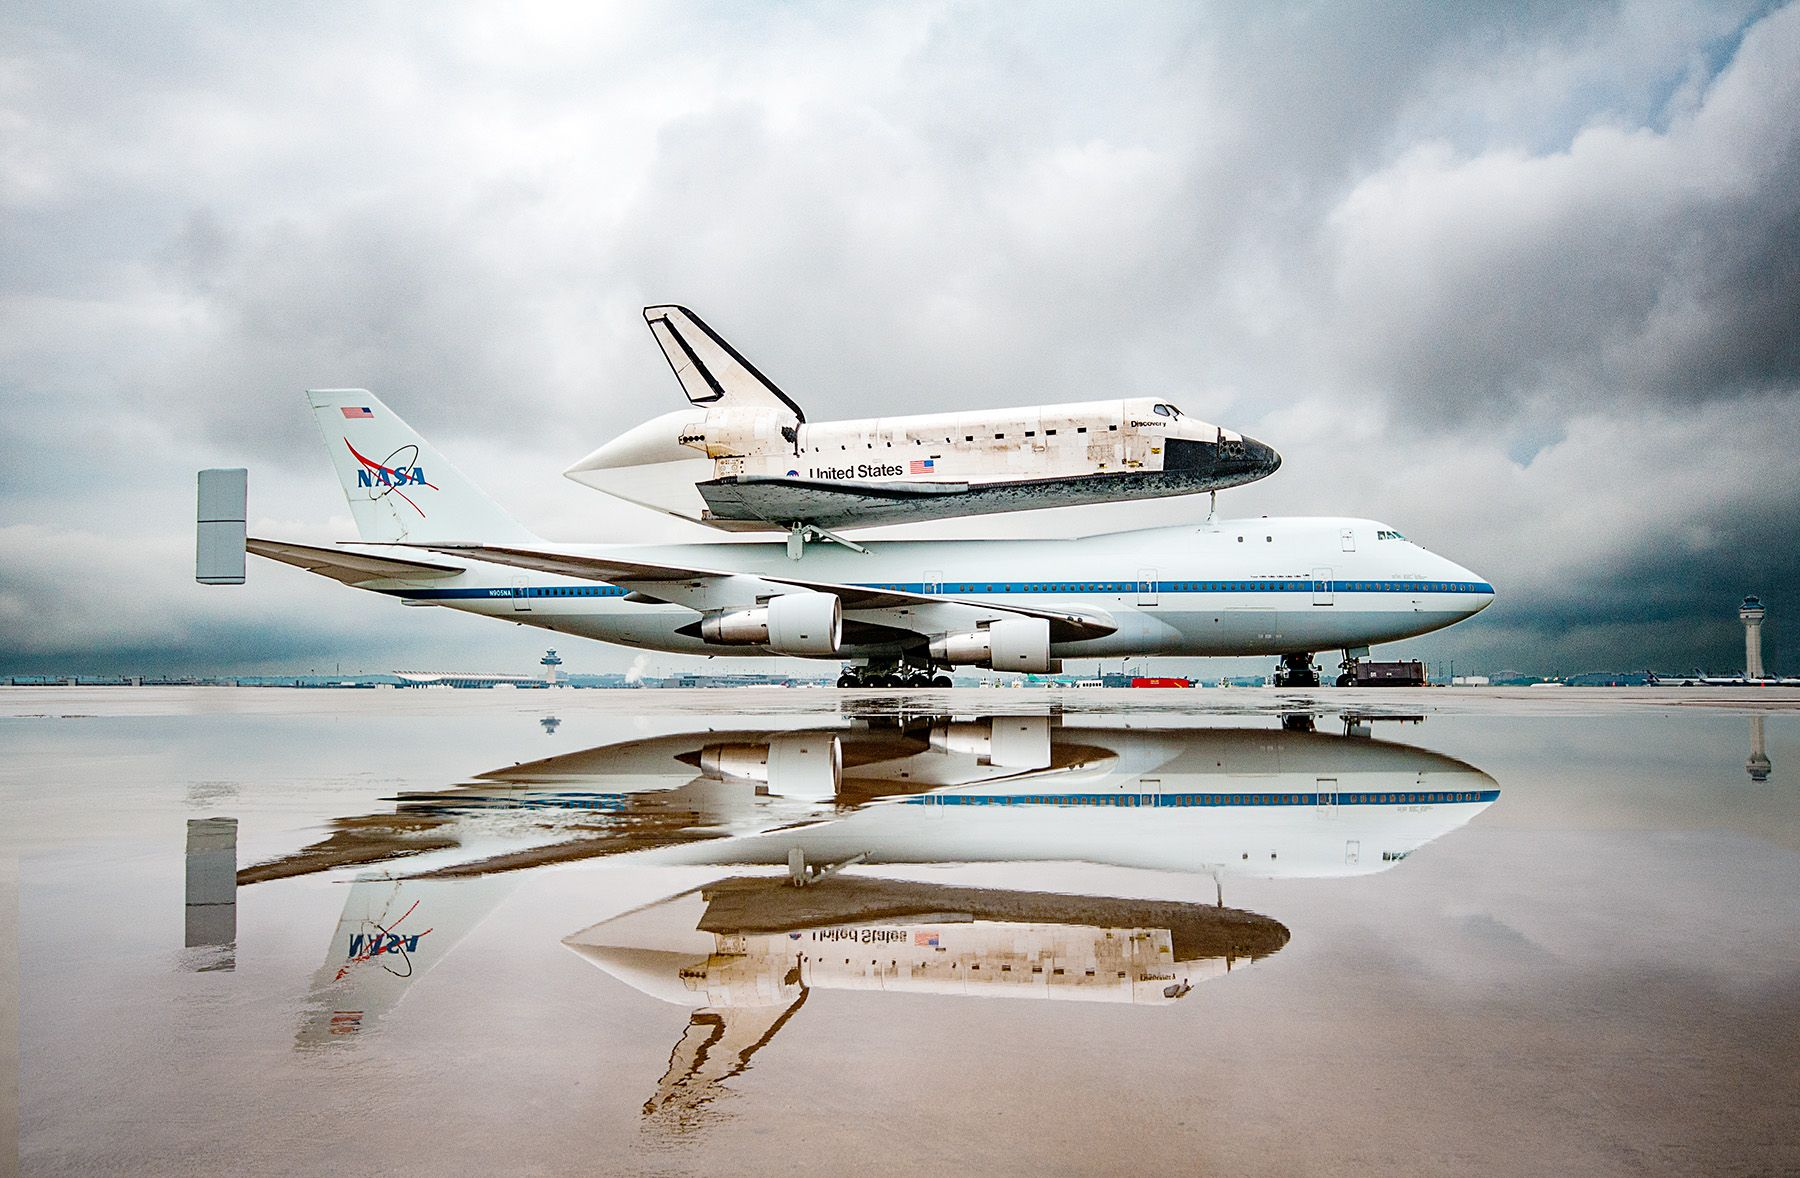 Space Shuttle Discovery Atop the Shuttle Transport Aircraft at Dulles Int'l. Airport